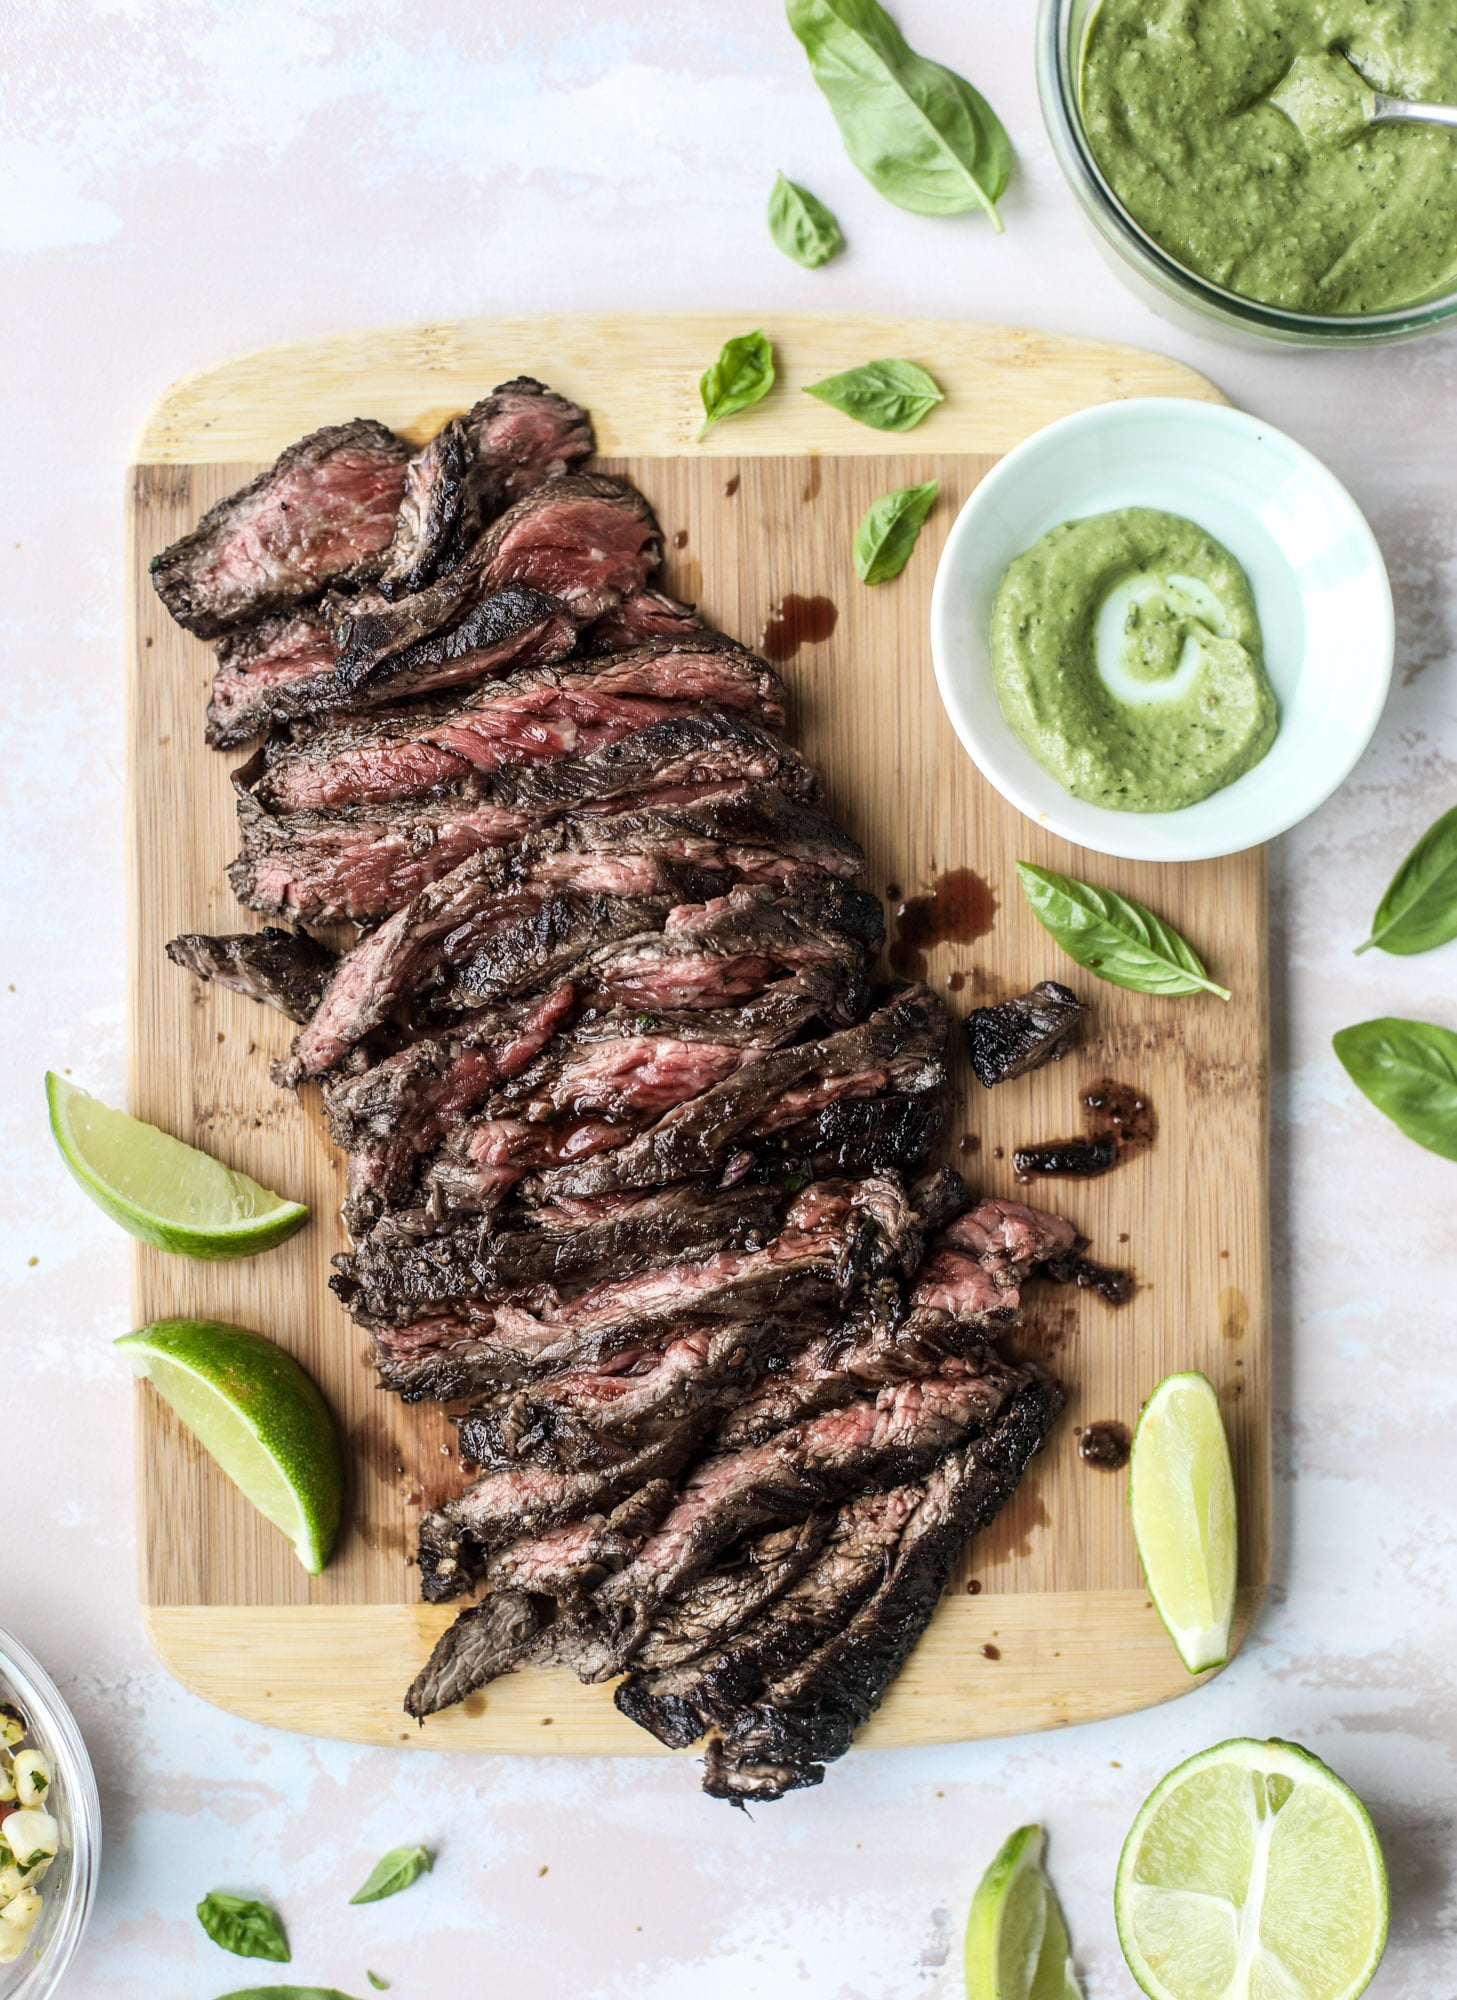 This skirt steak recipe is so super easy and delicious! Marinate it for a bit, prepare it to your liking then serve it with the most flavorful avocado pesto and grilled corn relish. Feels like a fancy restaurant meal and will make you love skirt steak forever! I howsweeteats.com #skirt #steak #avocado #pesto #corn #relish #recipes